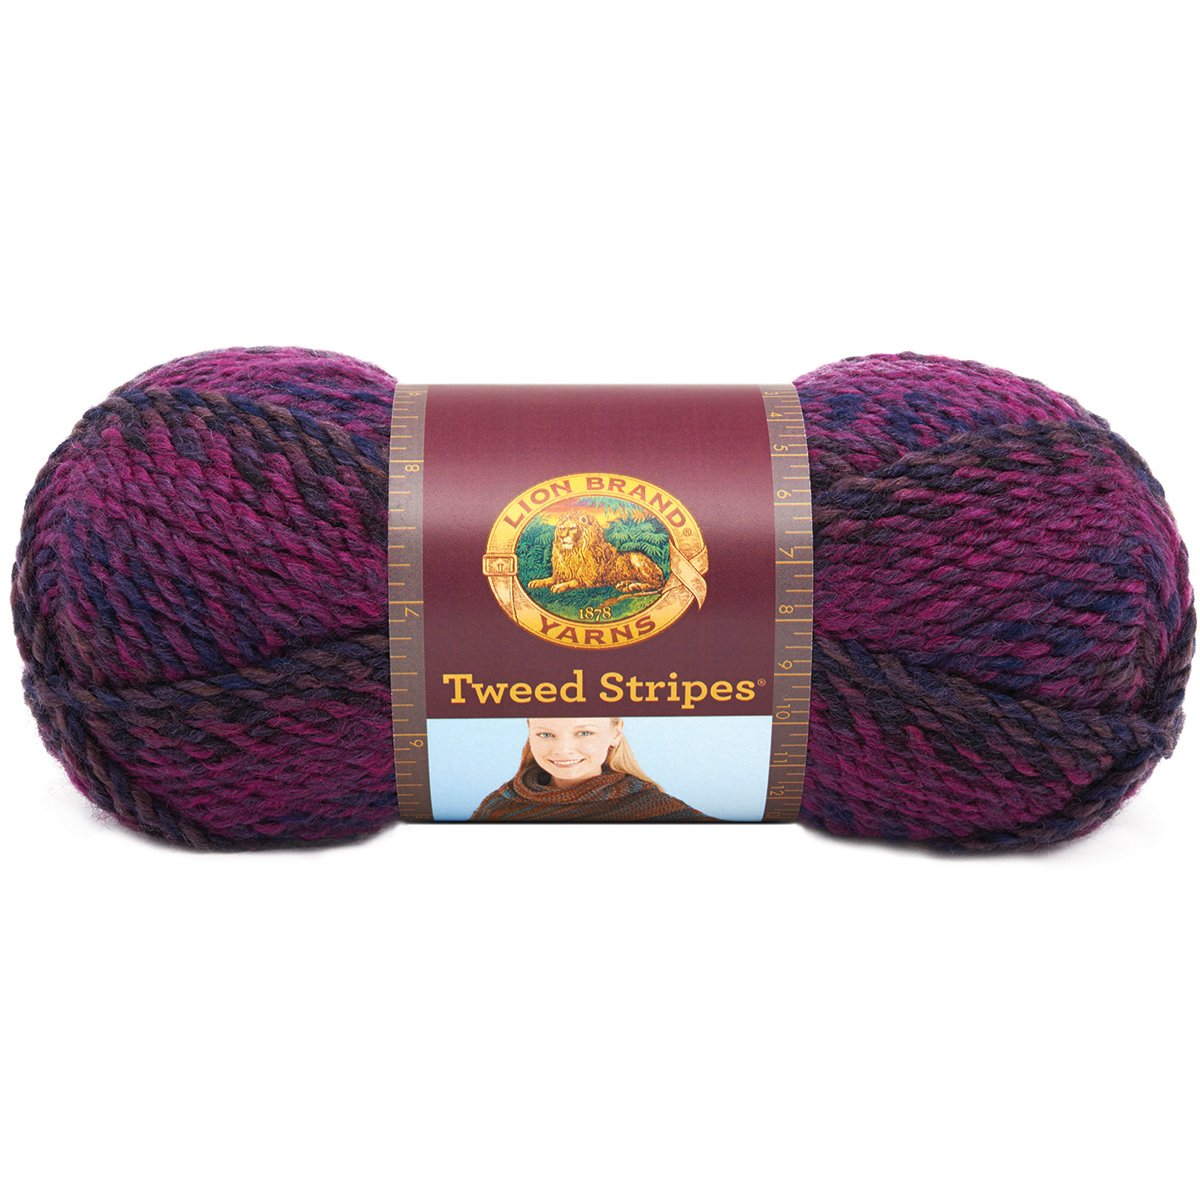 Lion Brand Yarn 753-206U Tweed Stripes Yarn, Woodlands